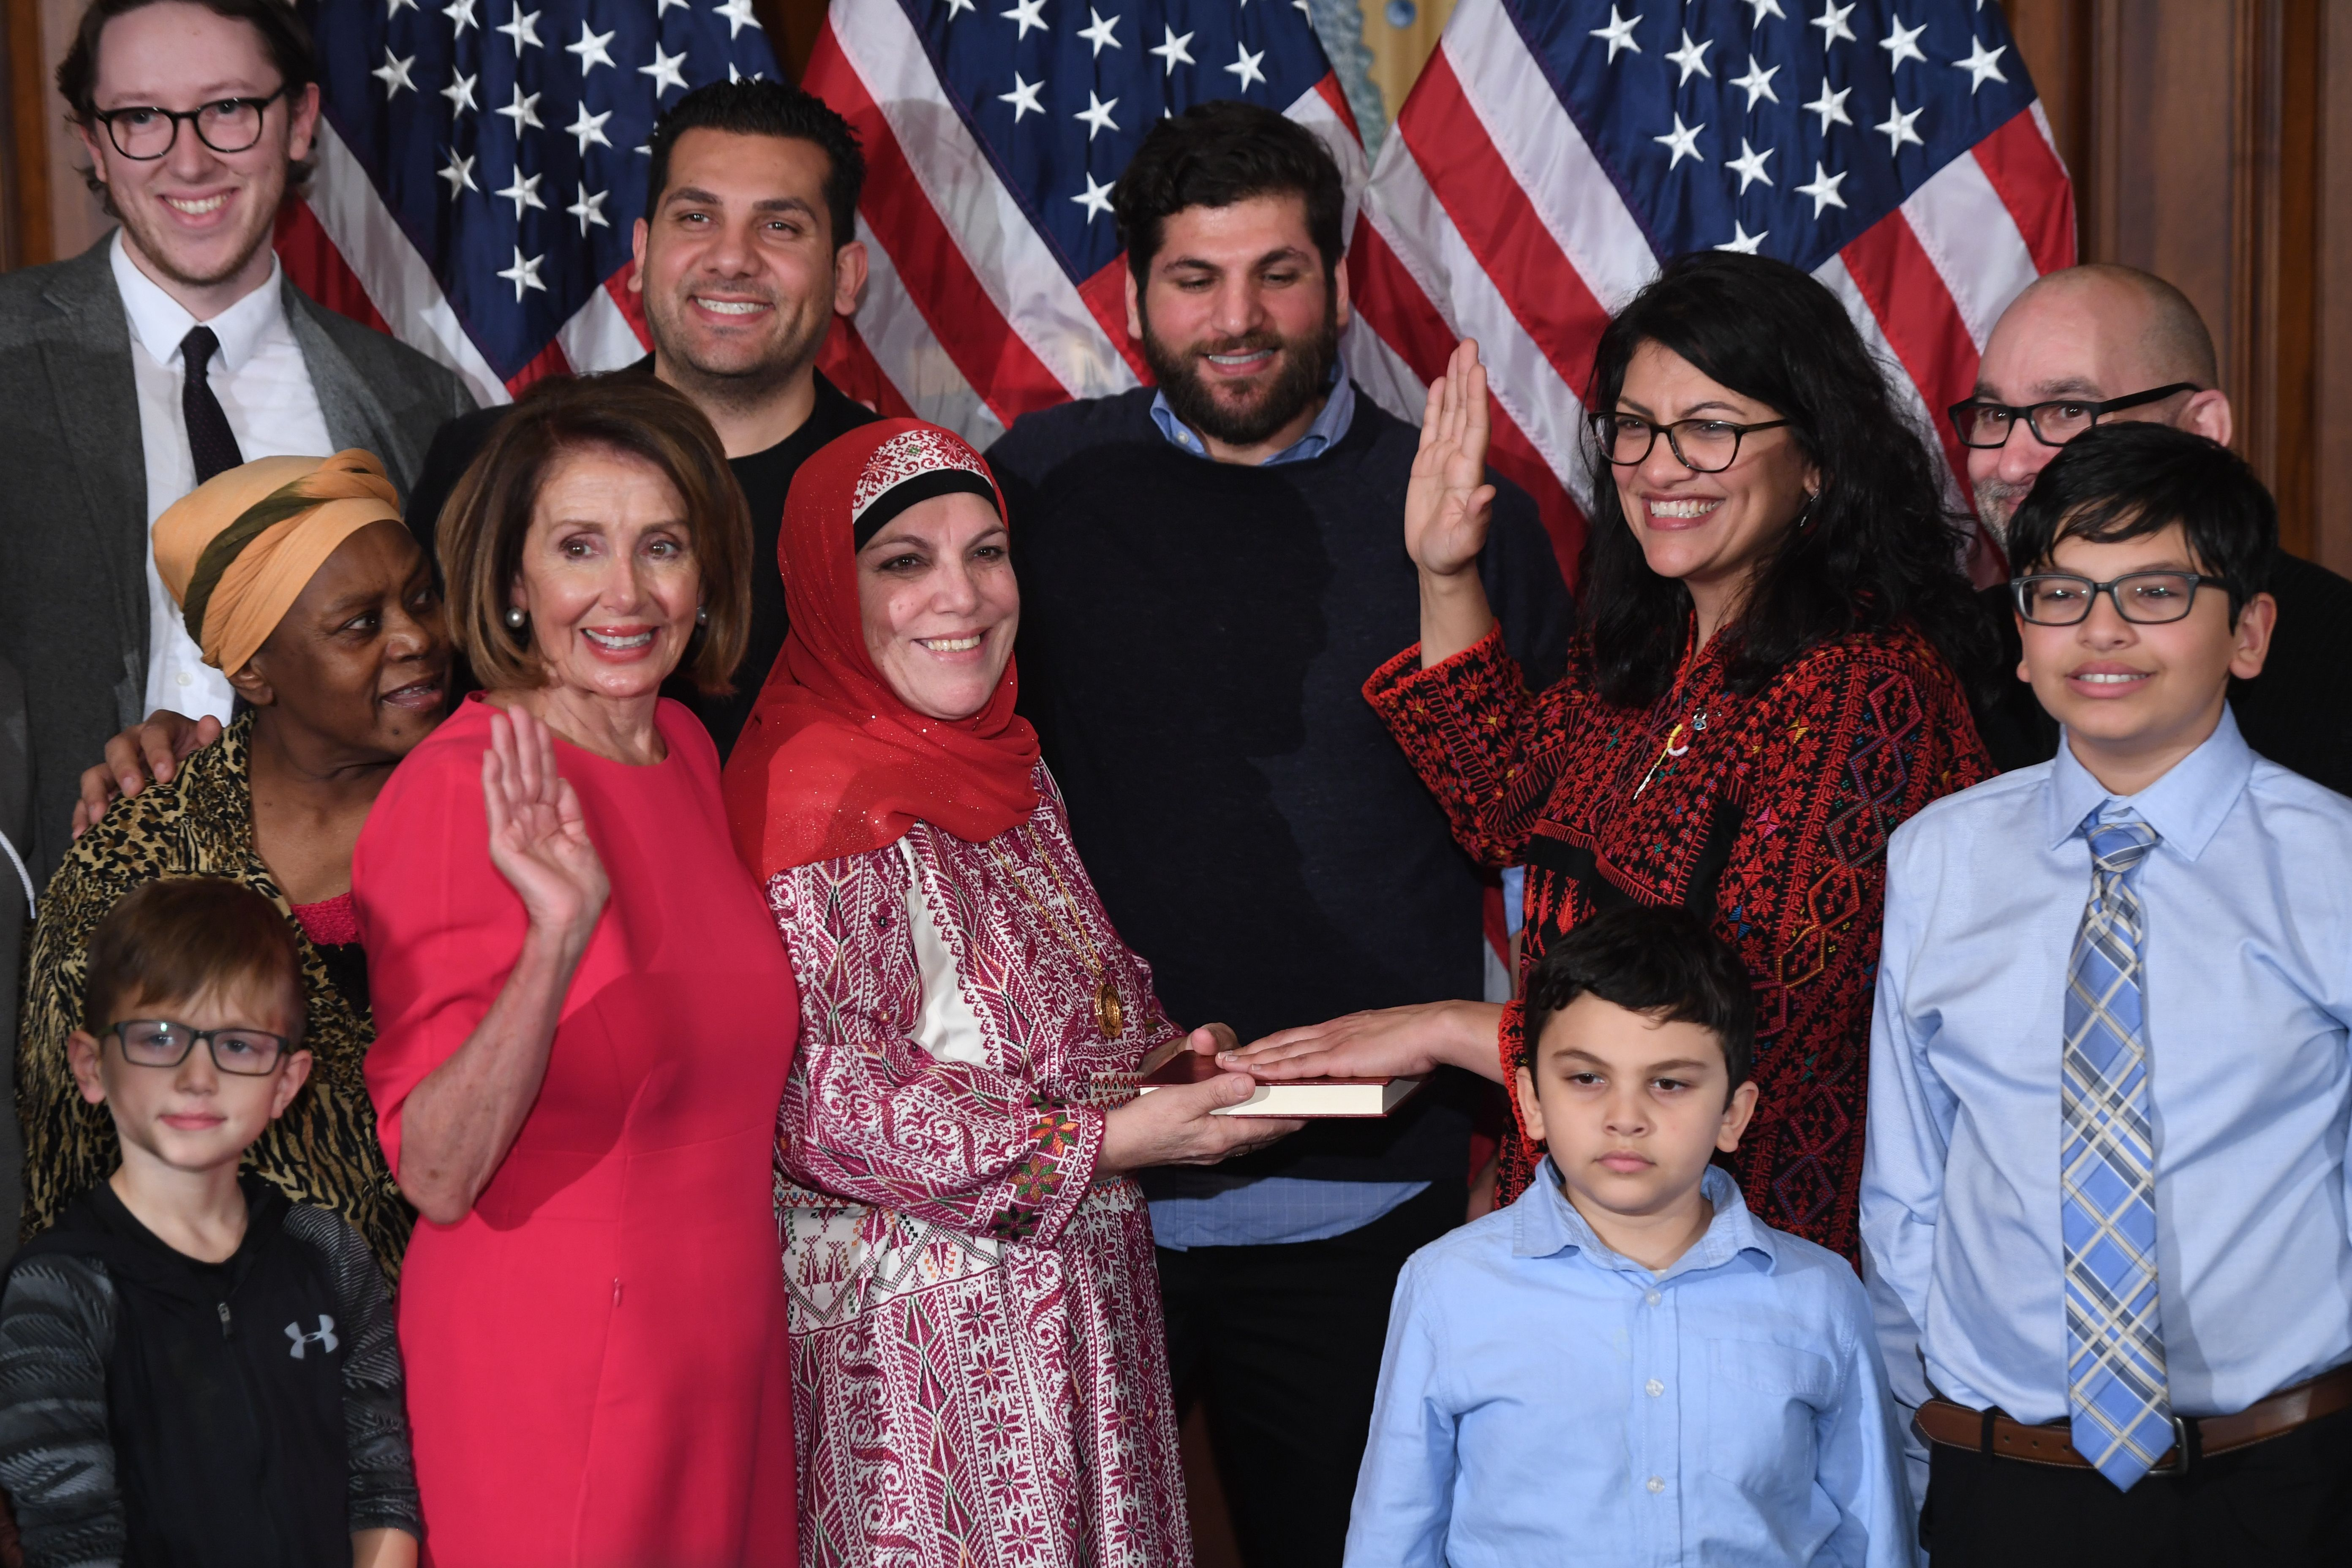 Representative Rashida Tlaib participates in a ceremonial swearing-in from Speaker of the House Nancy Pelosi at the start of the 116th Congress at the US Capitol in Washington, DC, January 3, 2019. (SAUL LOEB/AFP/Getty Images)